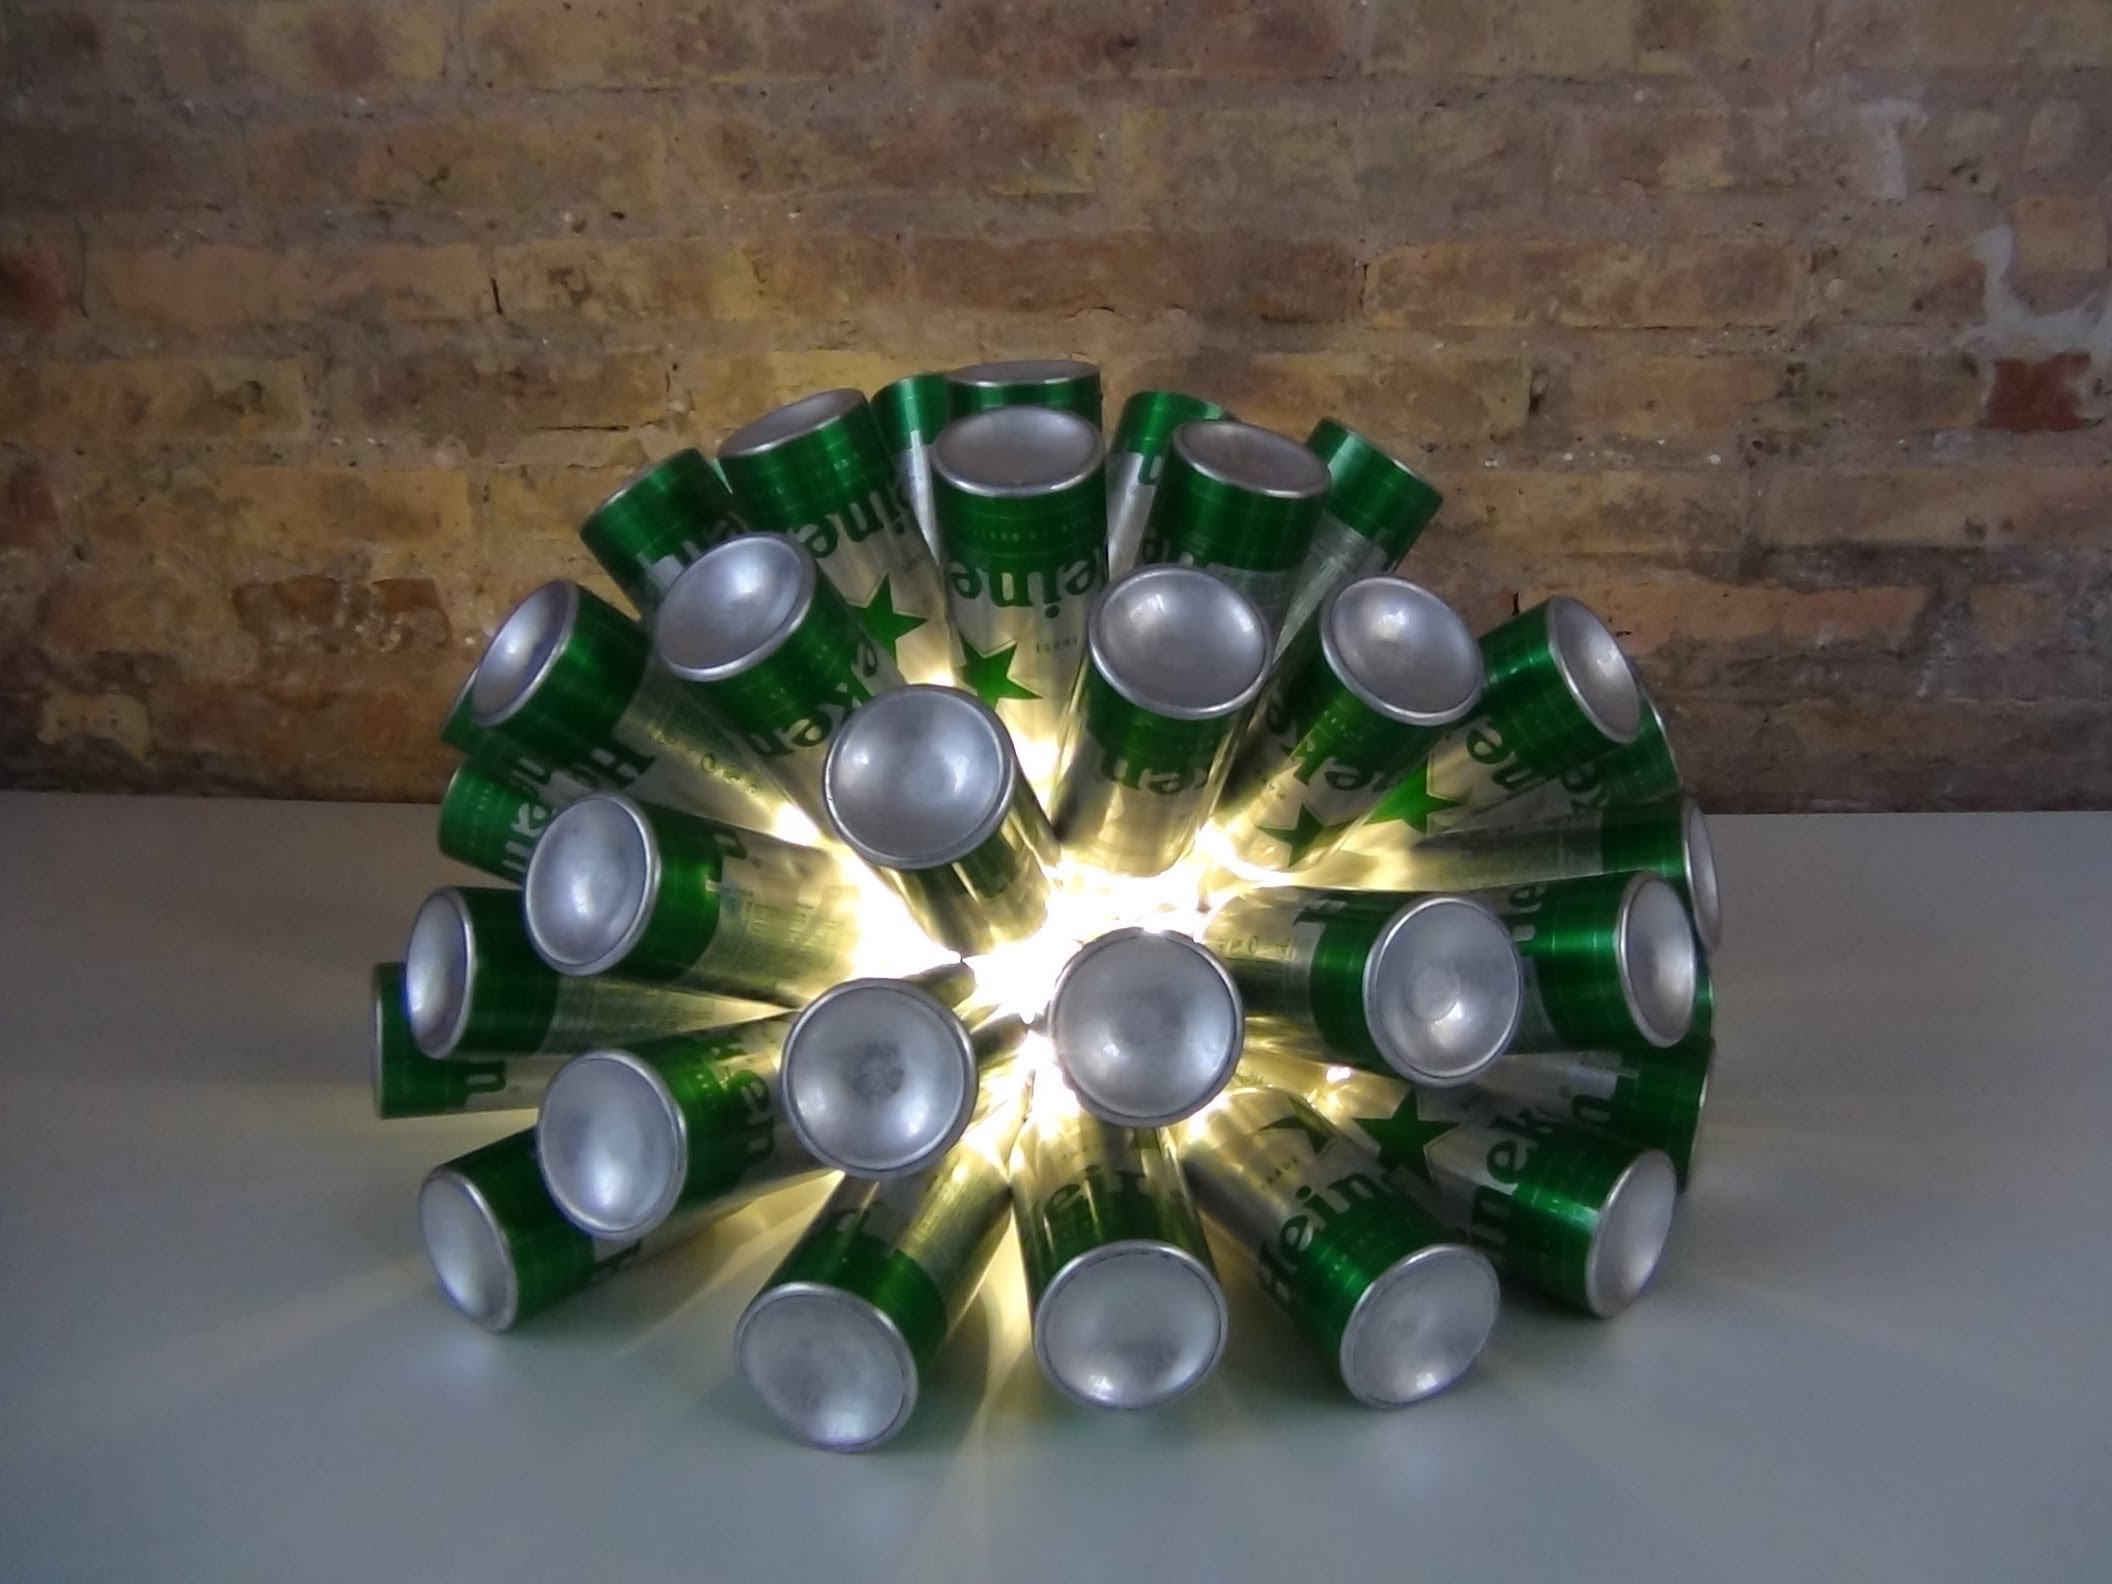 Cómo realizar una lámpara reciclando 50 botellas de cerveza - Lamp made out of 50 beer bottles